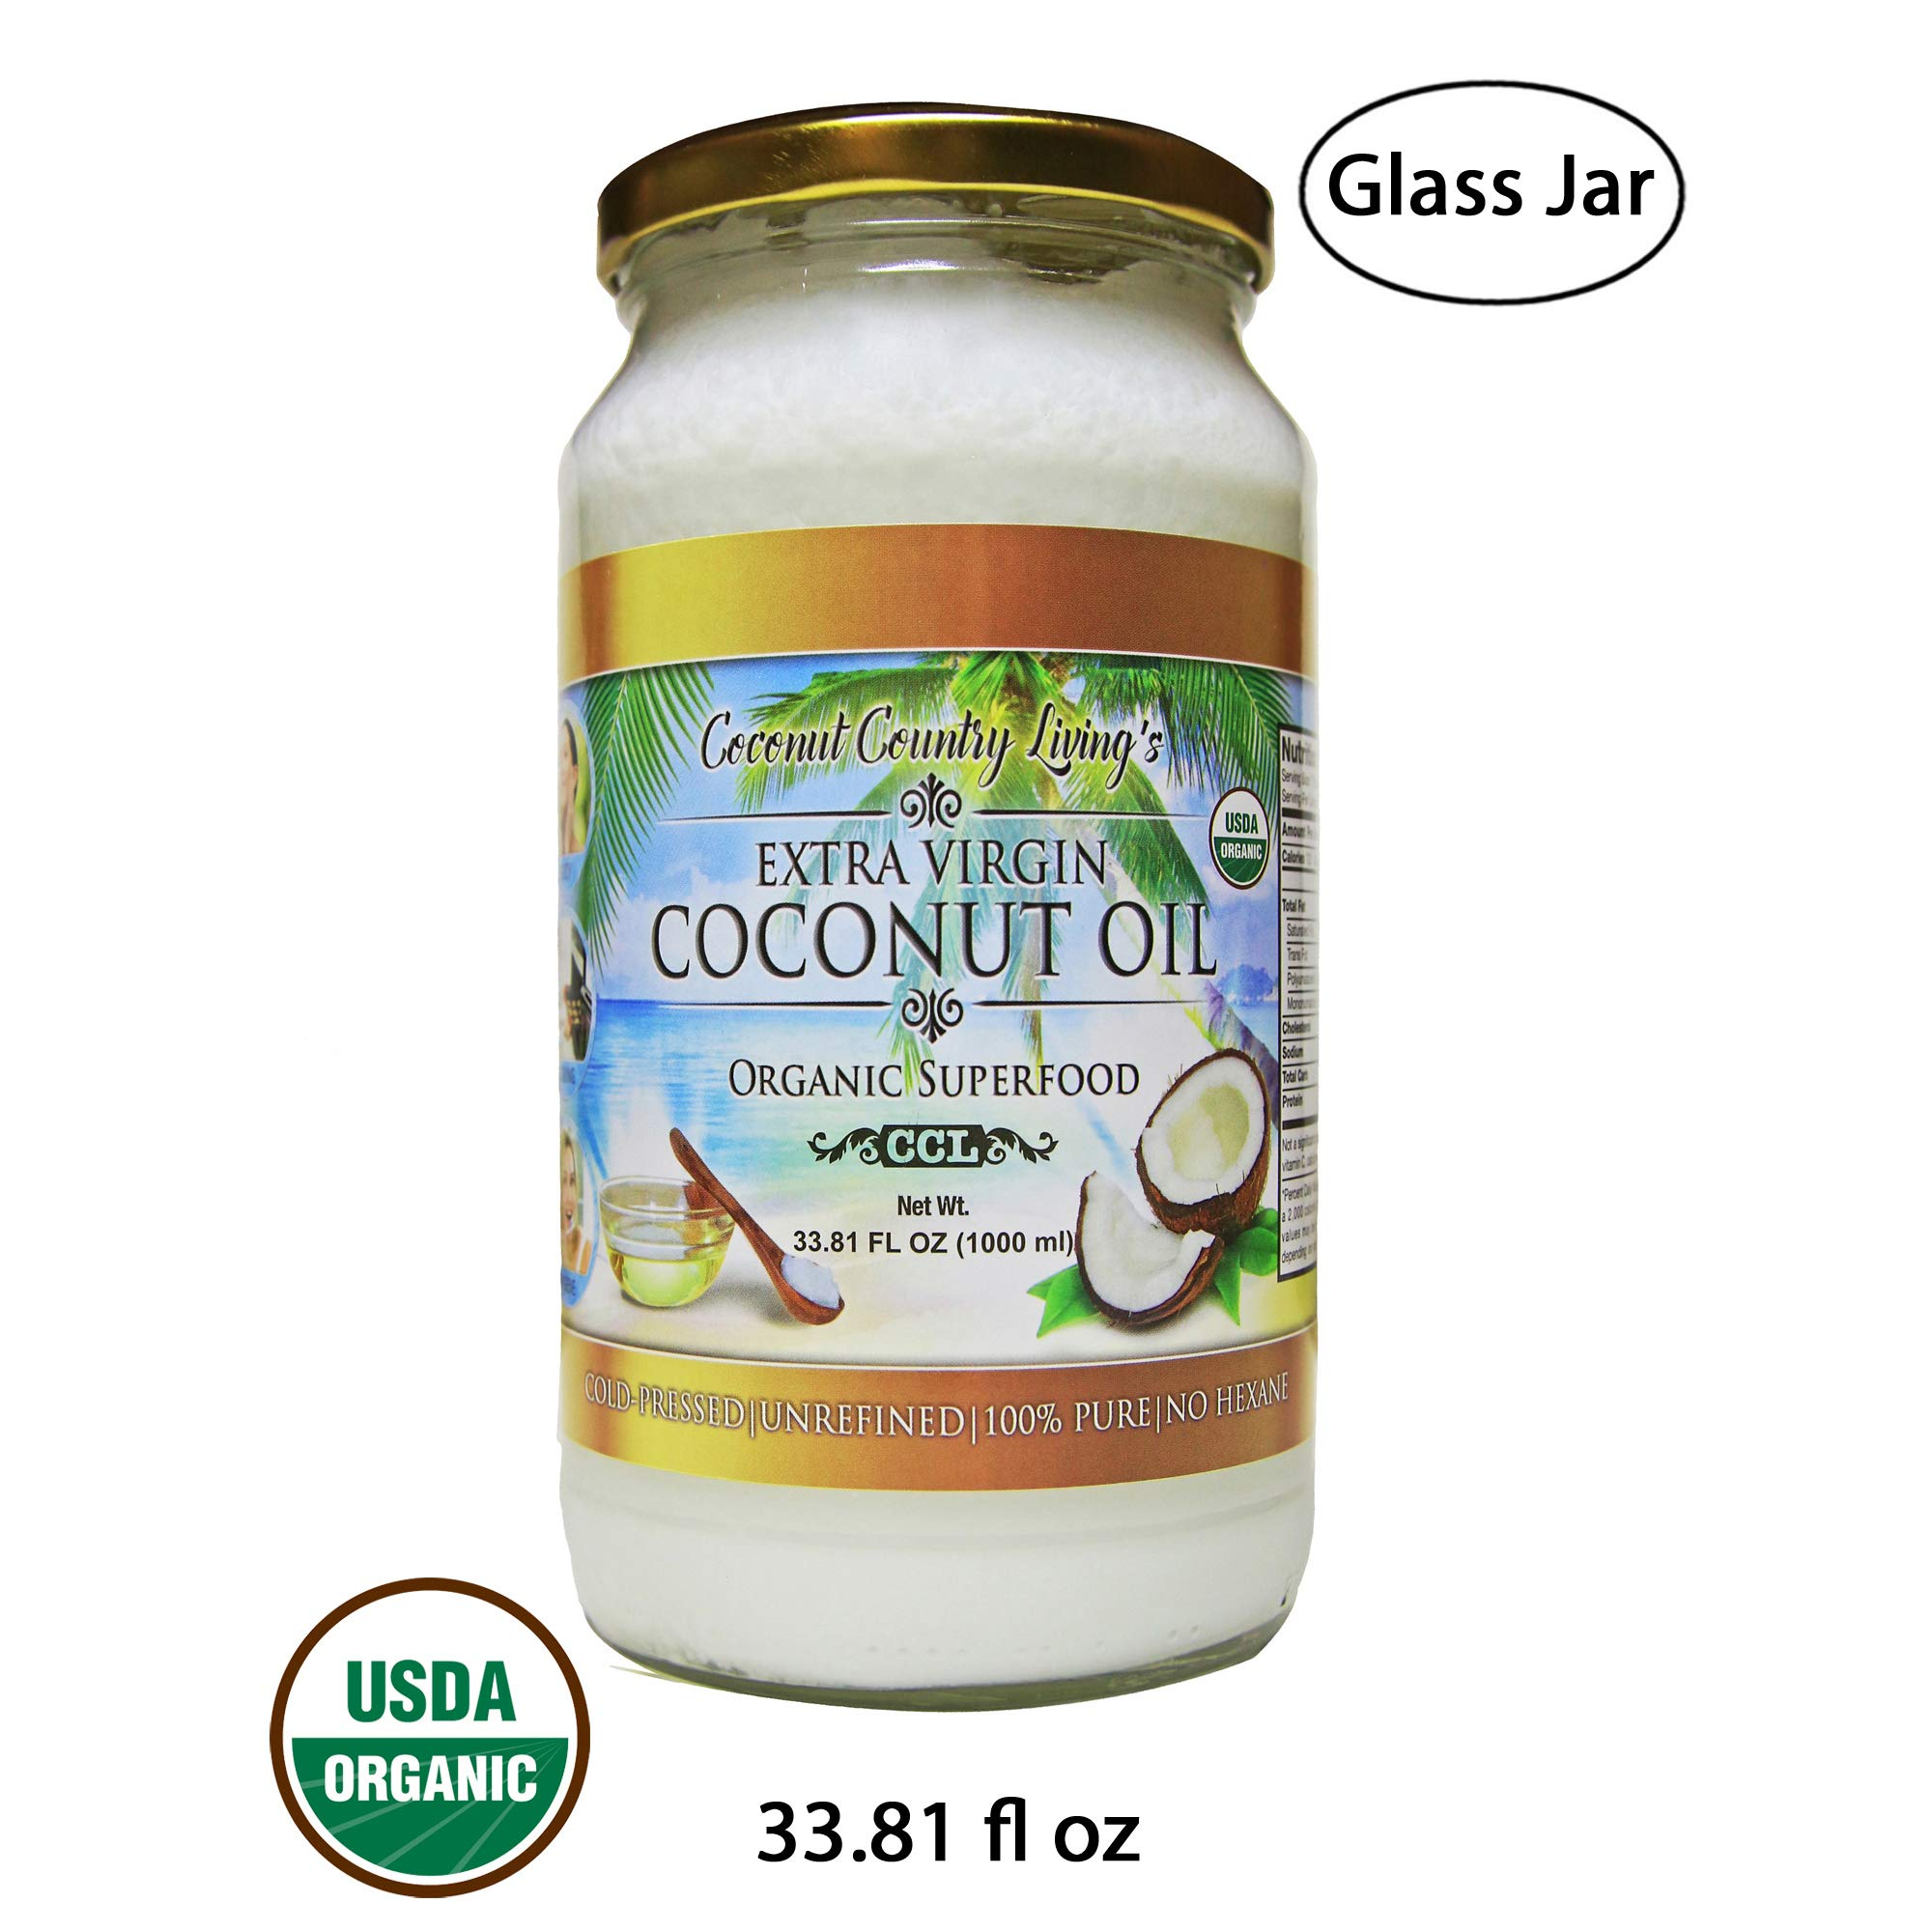 Organic Coconut Oil 33.81 Oz Extra Virgin Cold-Pressed for Hair, Skin, Beauty and Cooking by Coconut Country Living's